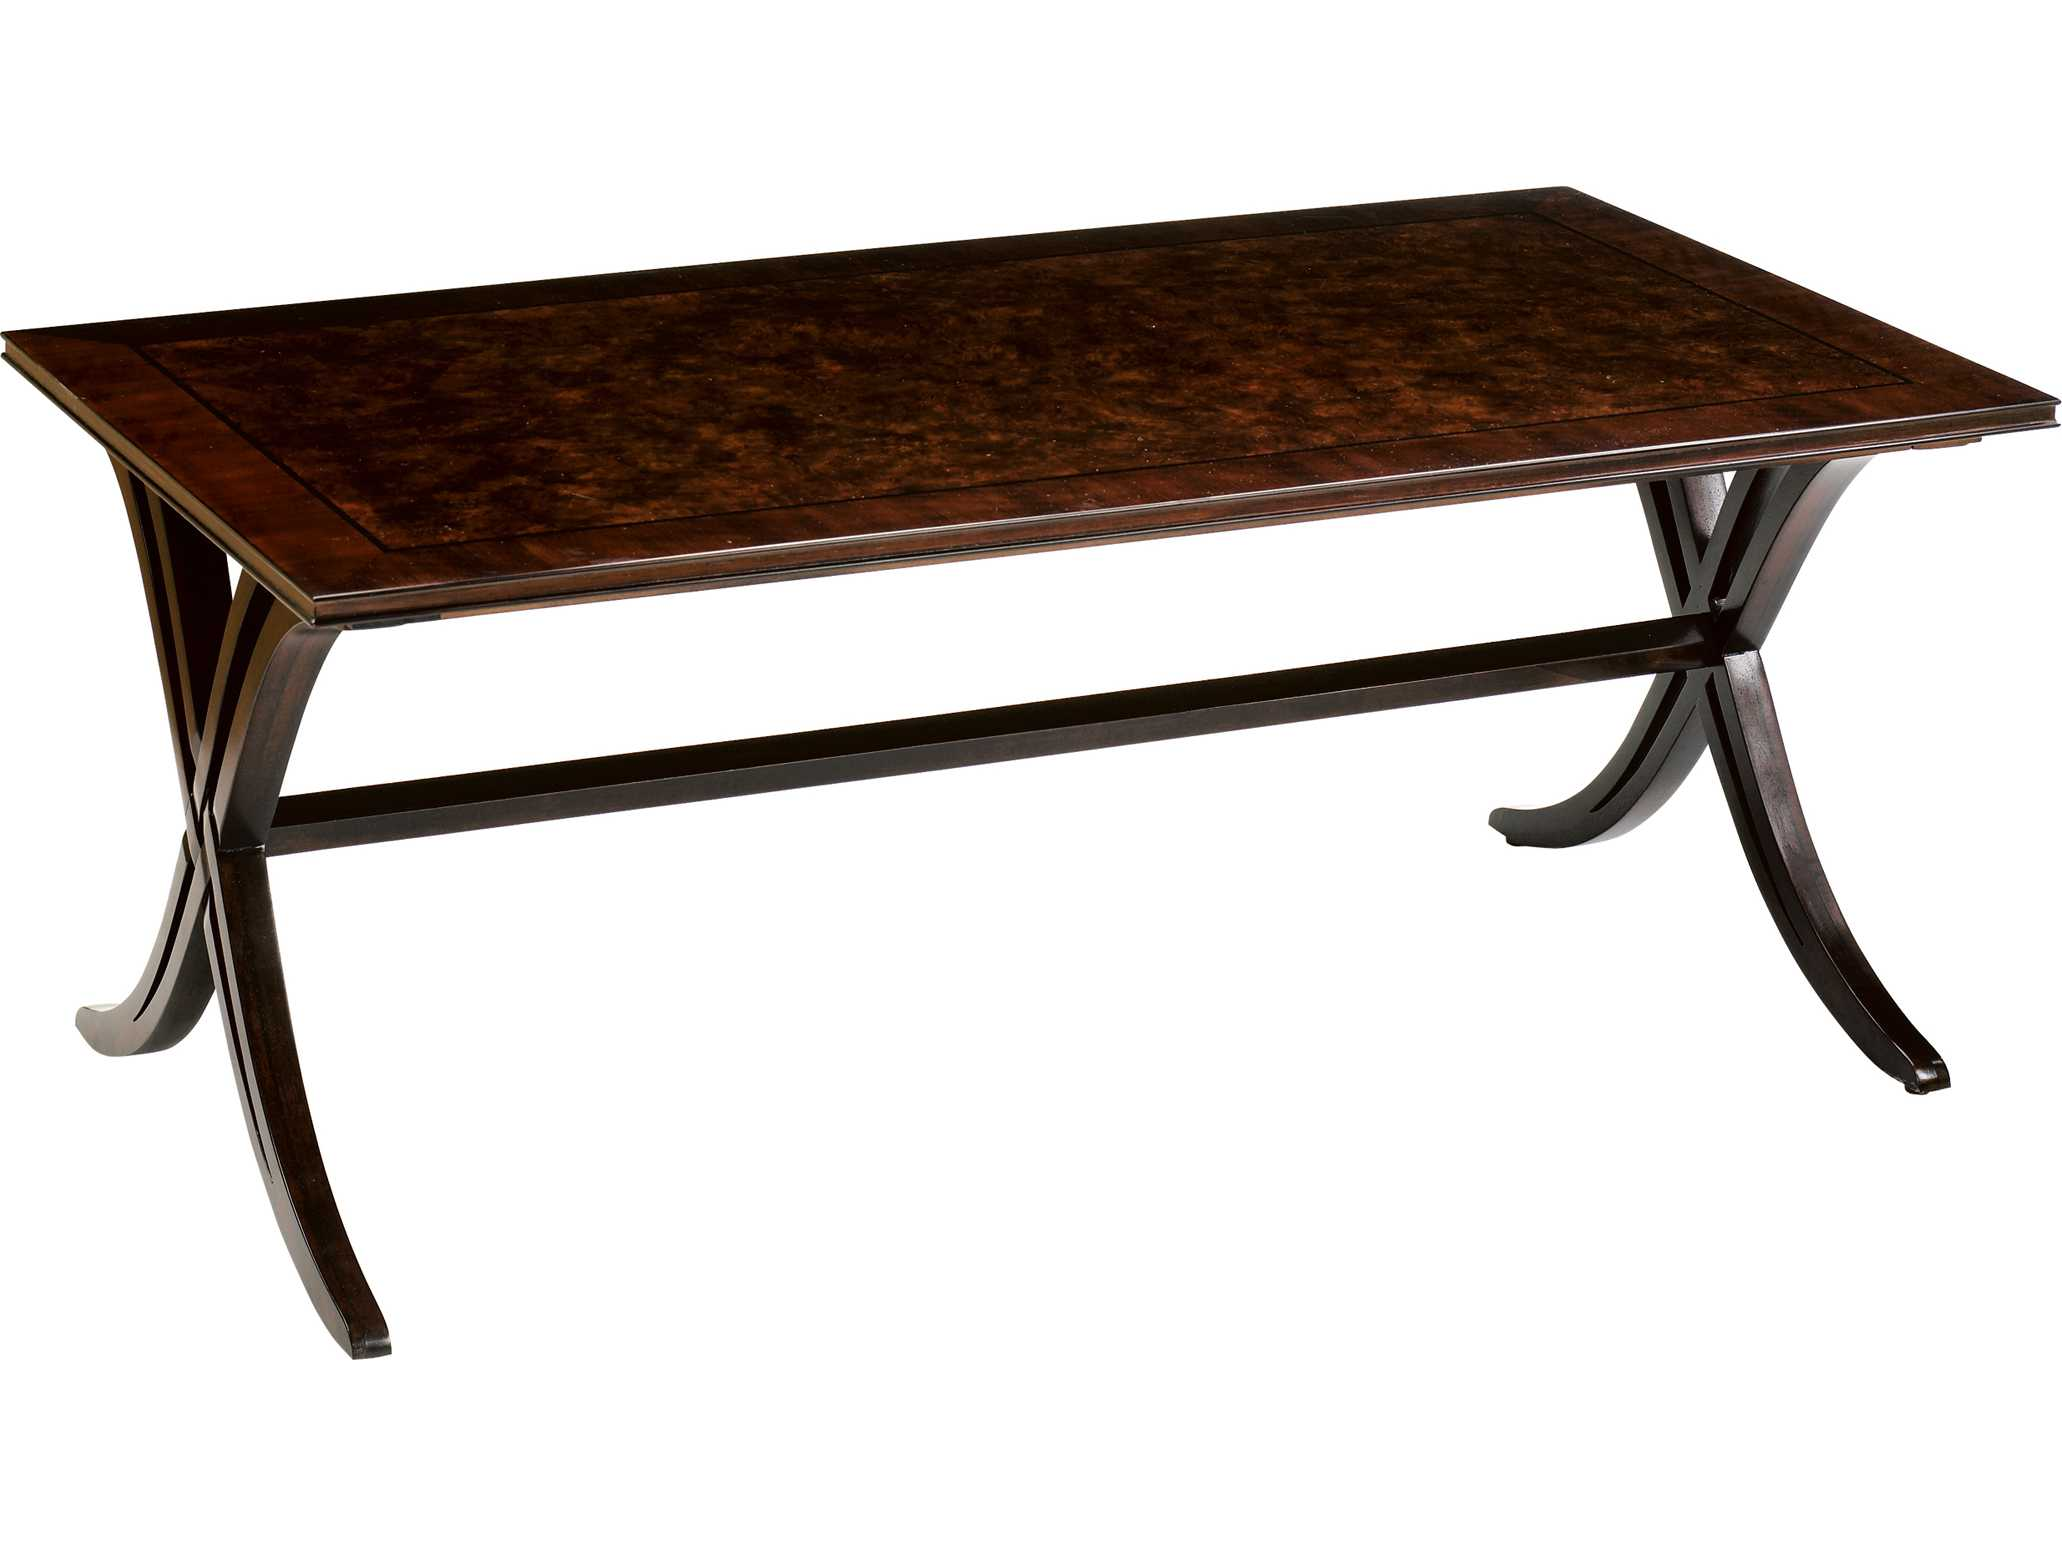 Hekman Paris 48 X 26 Rectangular Coffee Table 1 1200